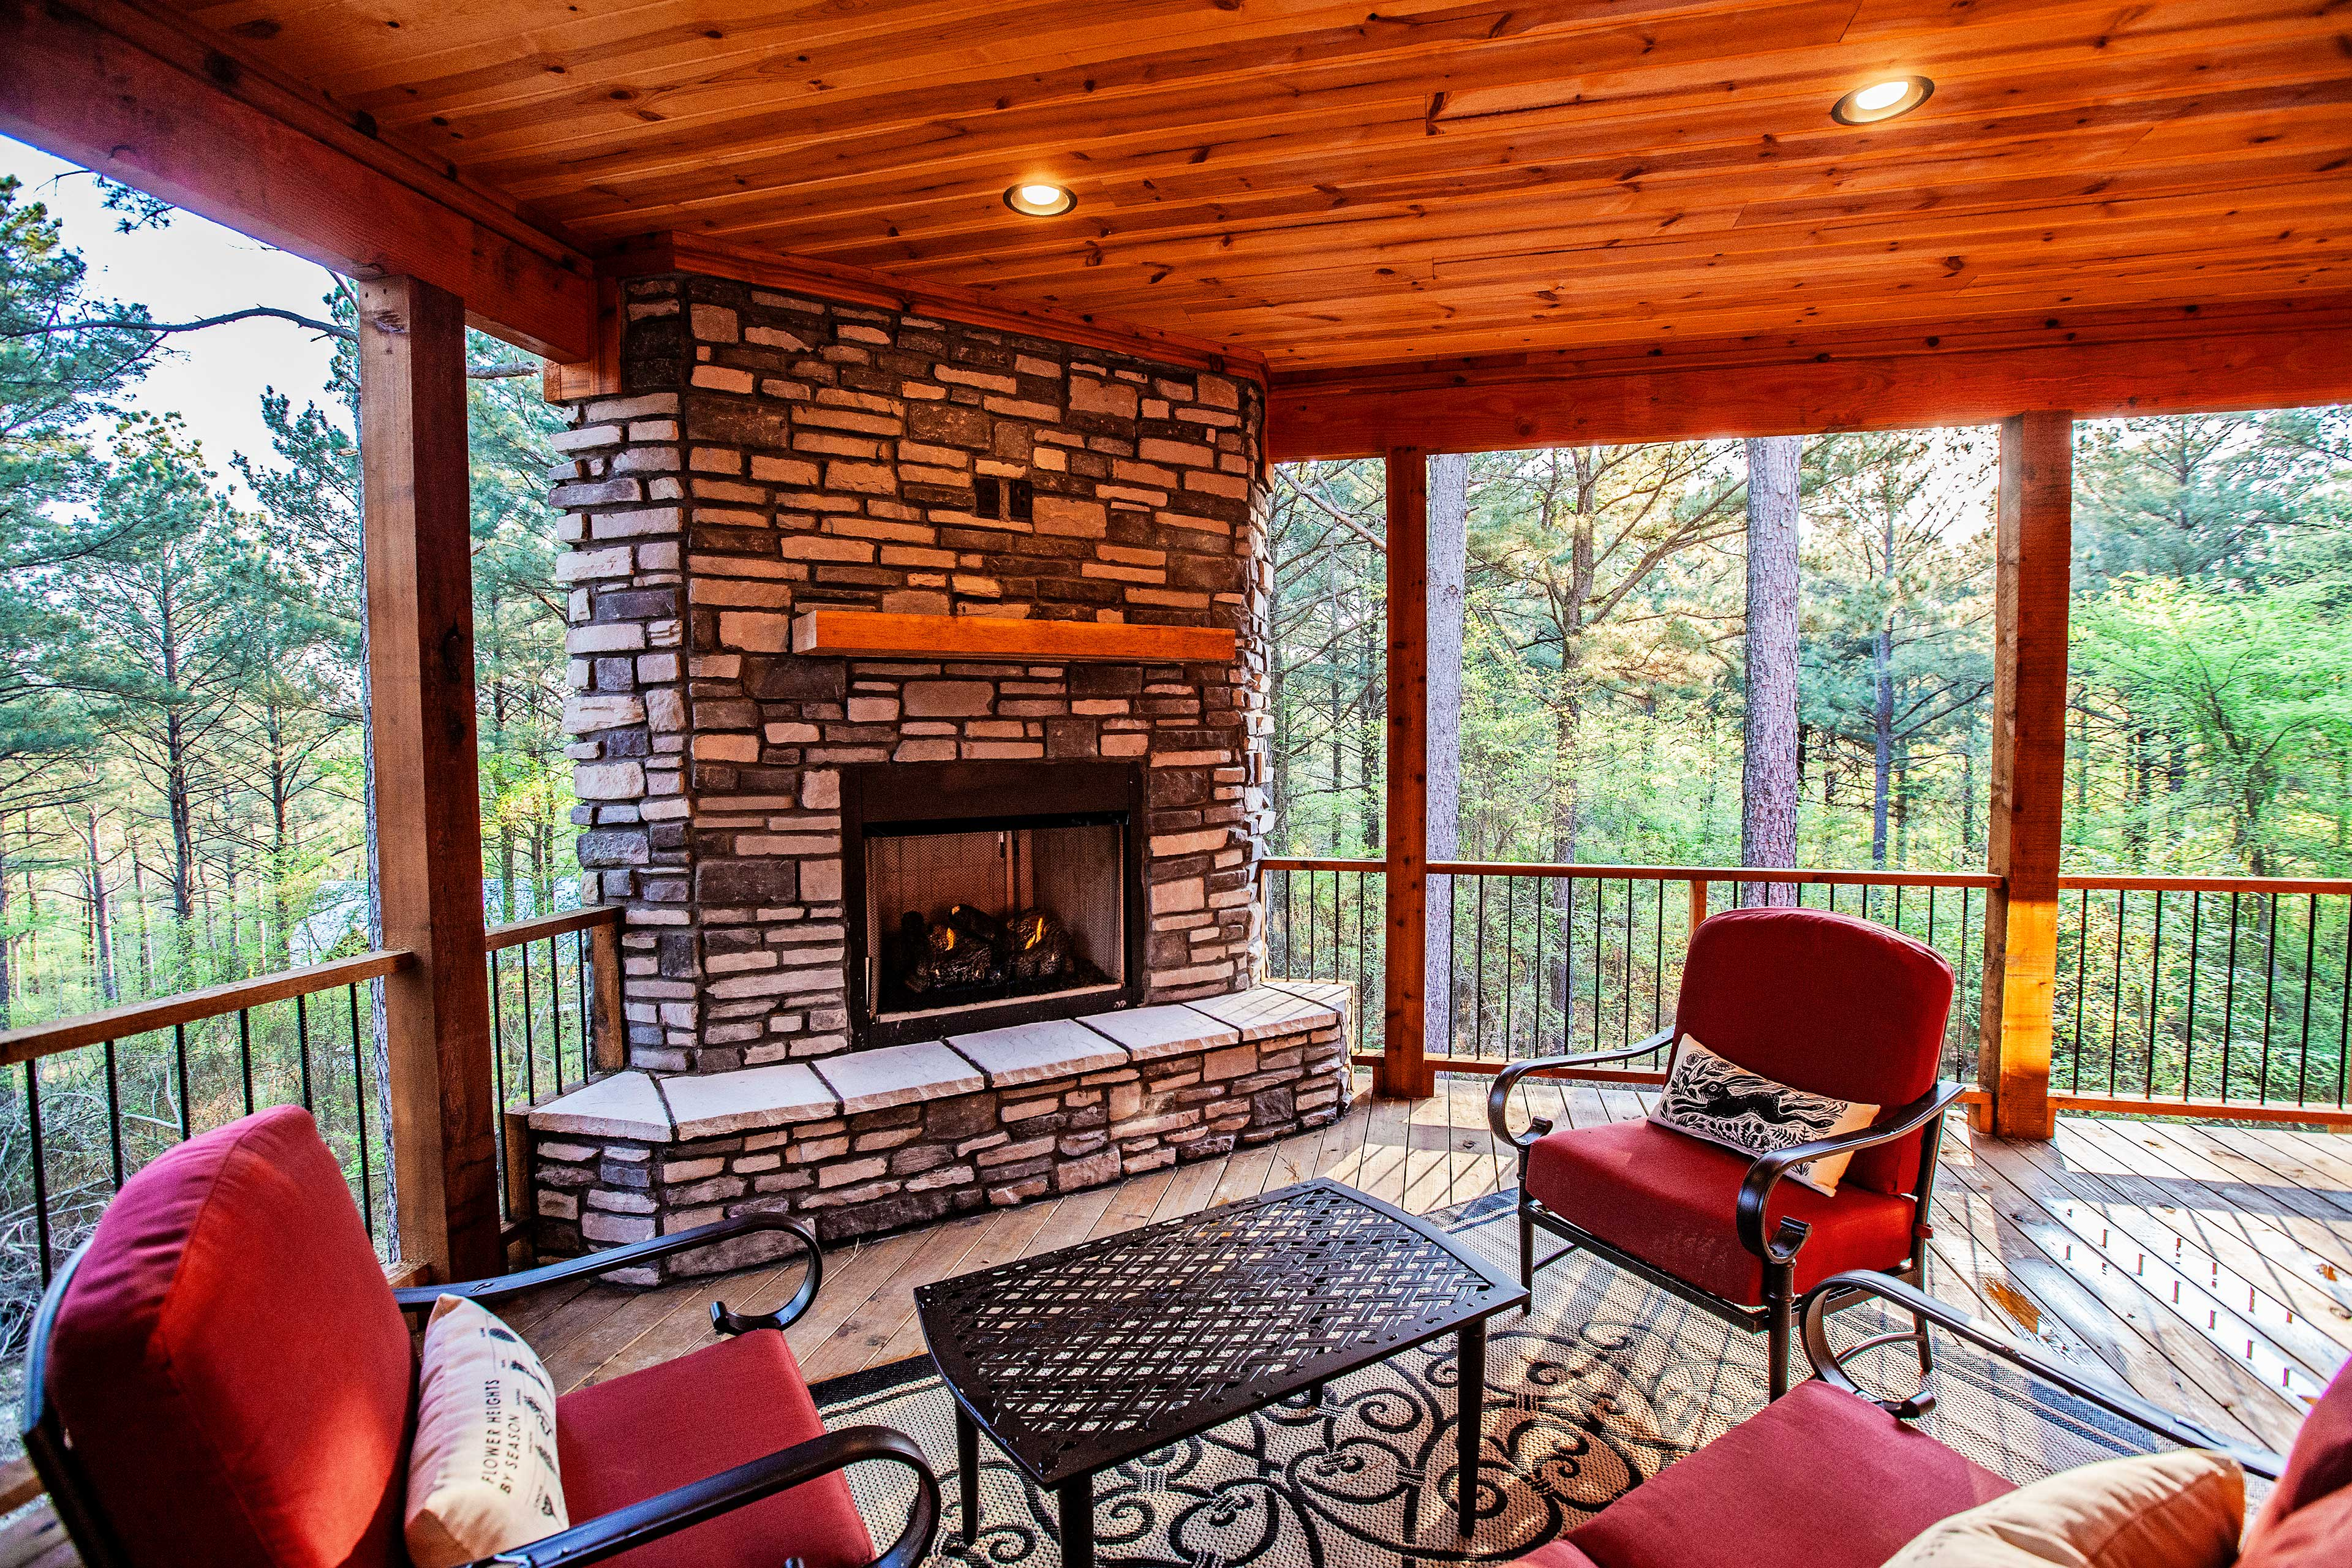 A second fireplace is located outdoors on the deck.